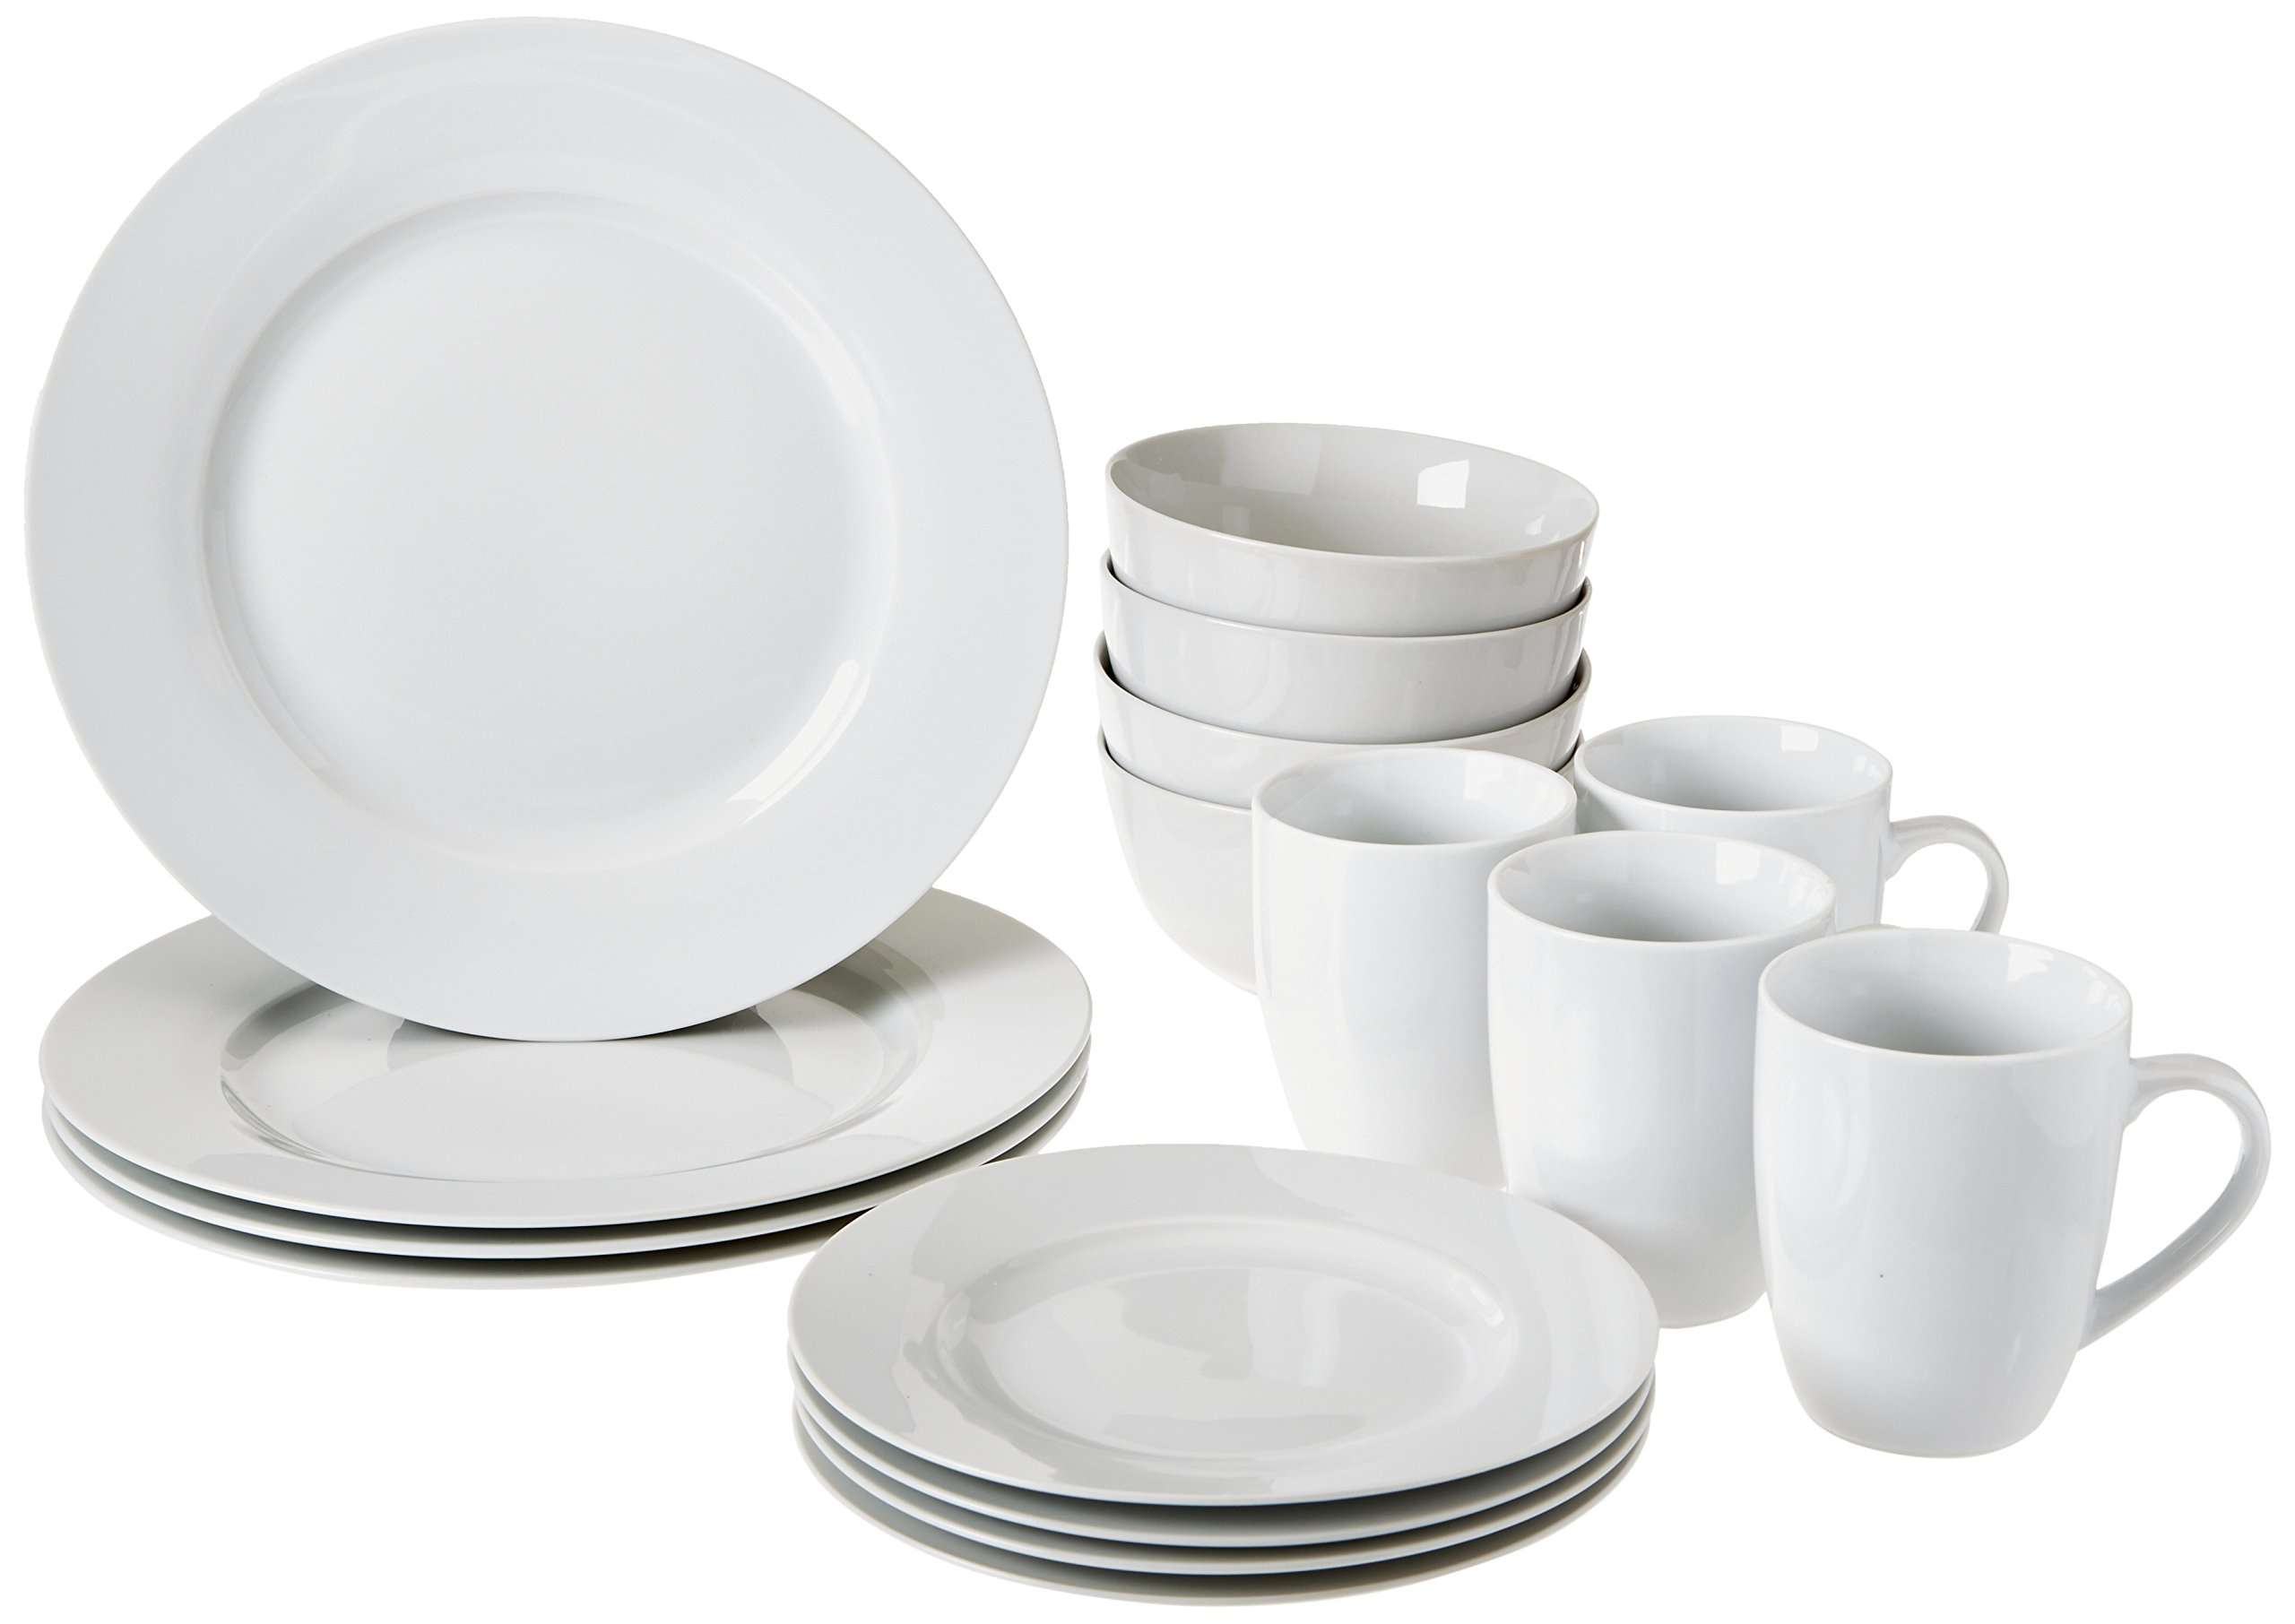 Amazonbasics 16 Piece Kitchen Dinnerware Set Plates